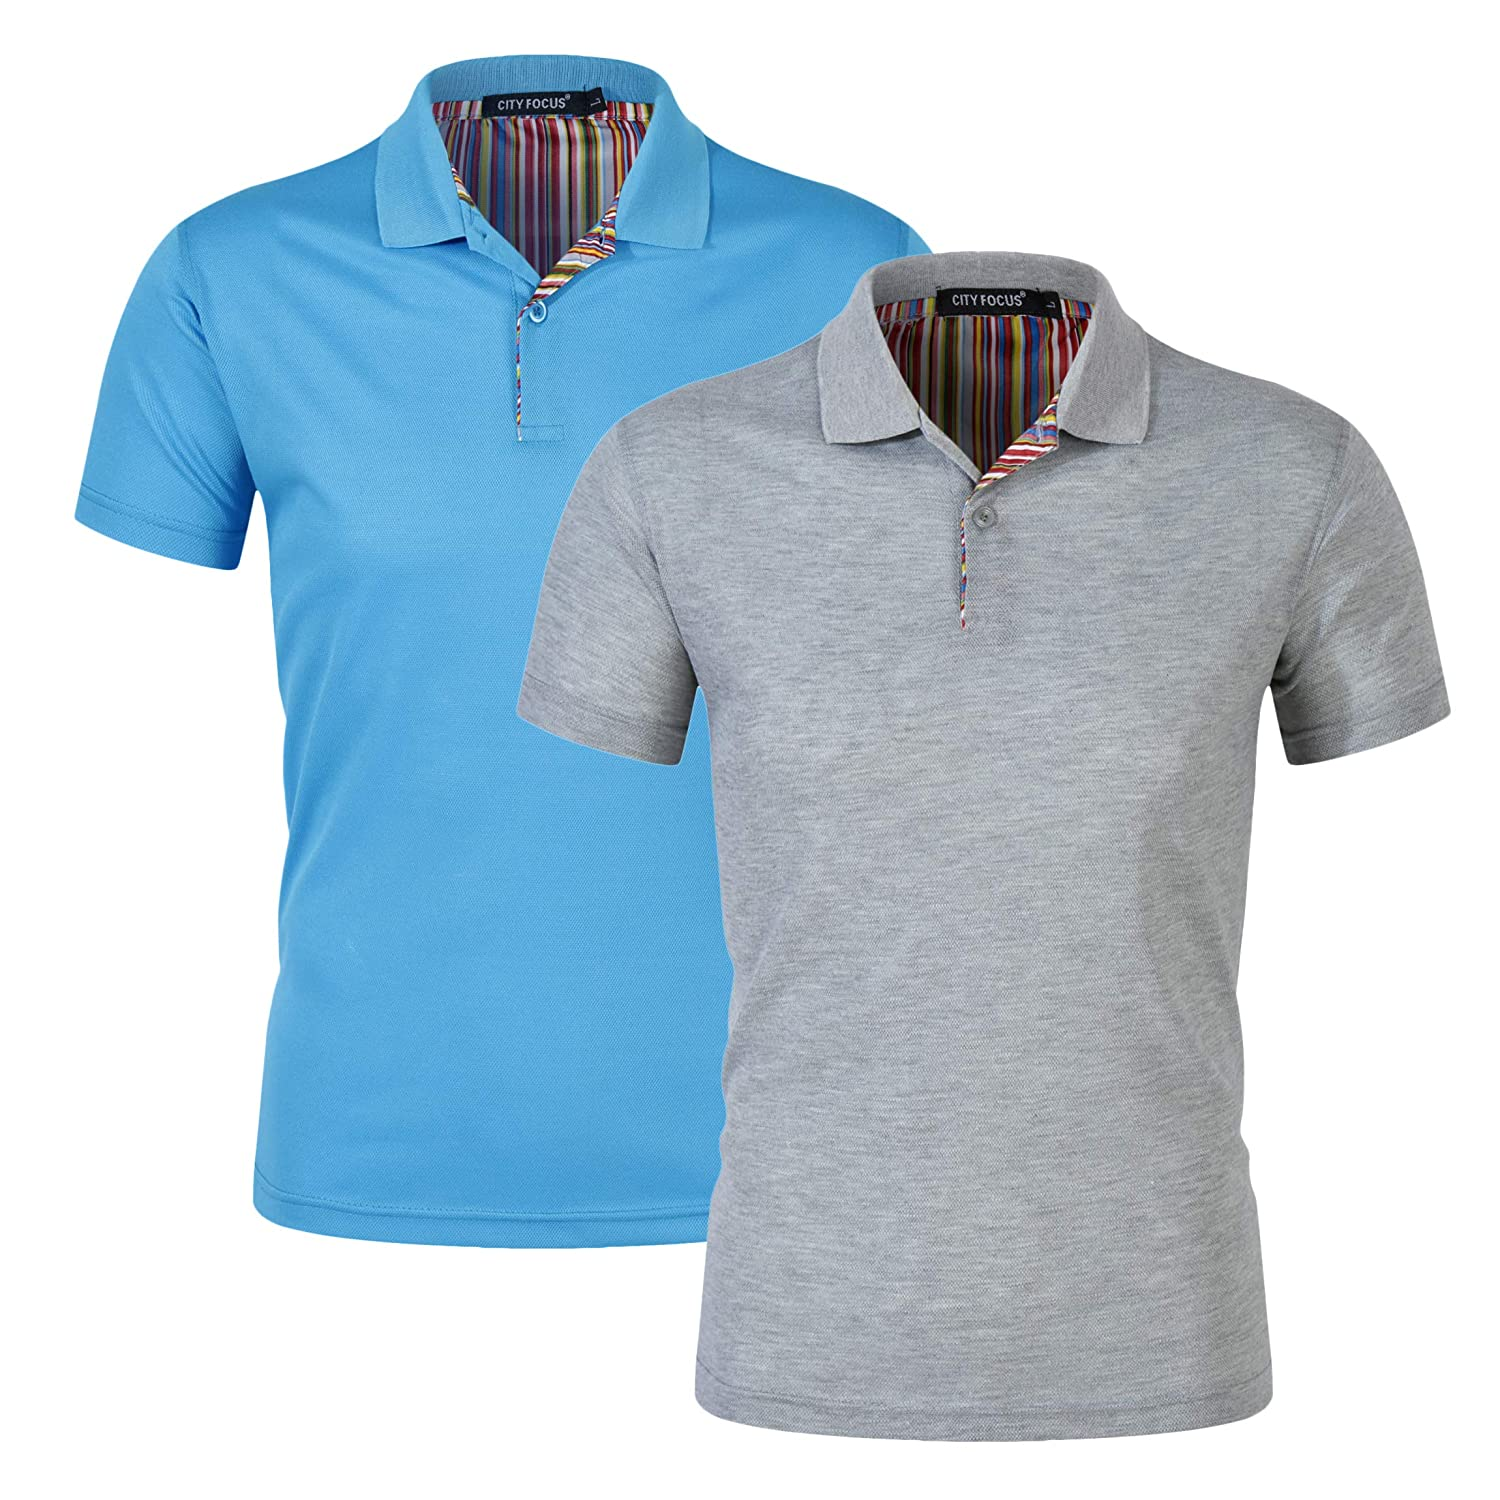 e21769df8 Mens Fashion Polo Shirts Solid Cool Dri-Fit Design Casual Slim Fit ...